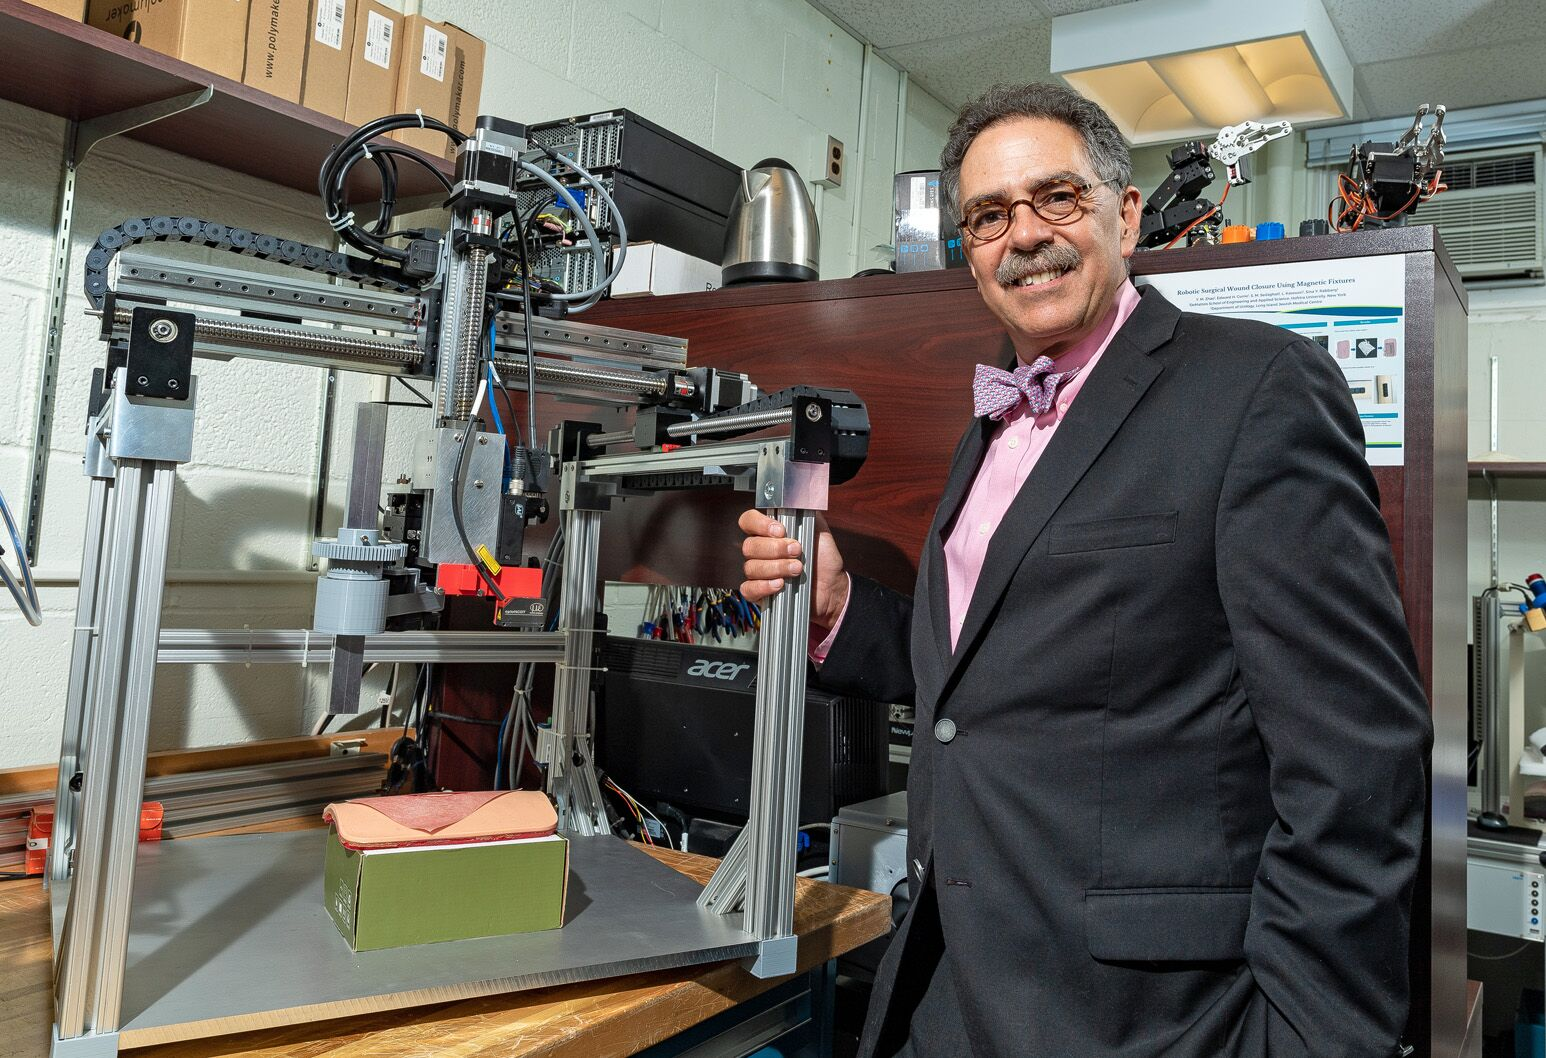 Louis Kavoussi stands next to his surgical suturing device